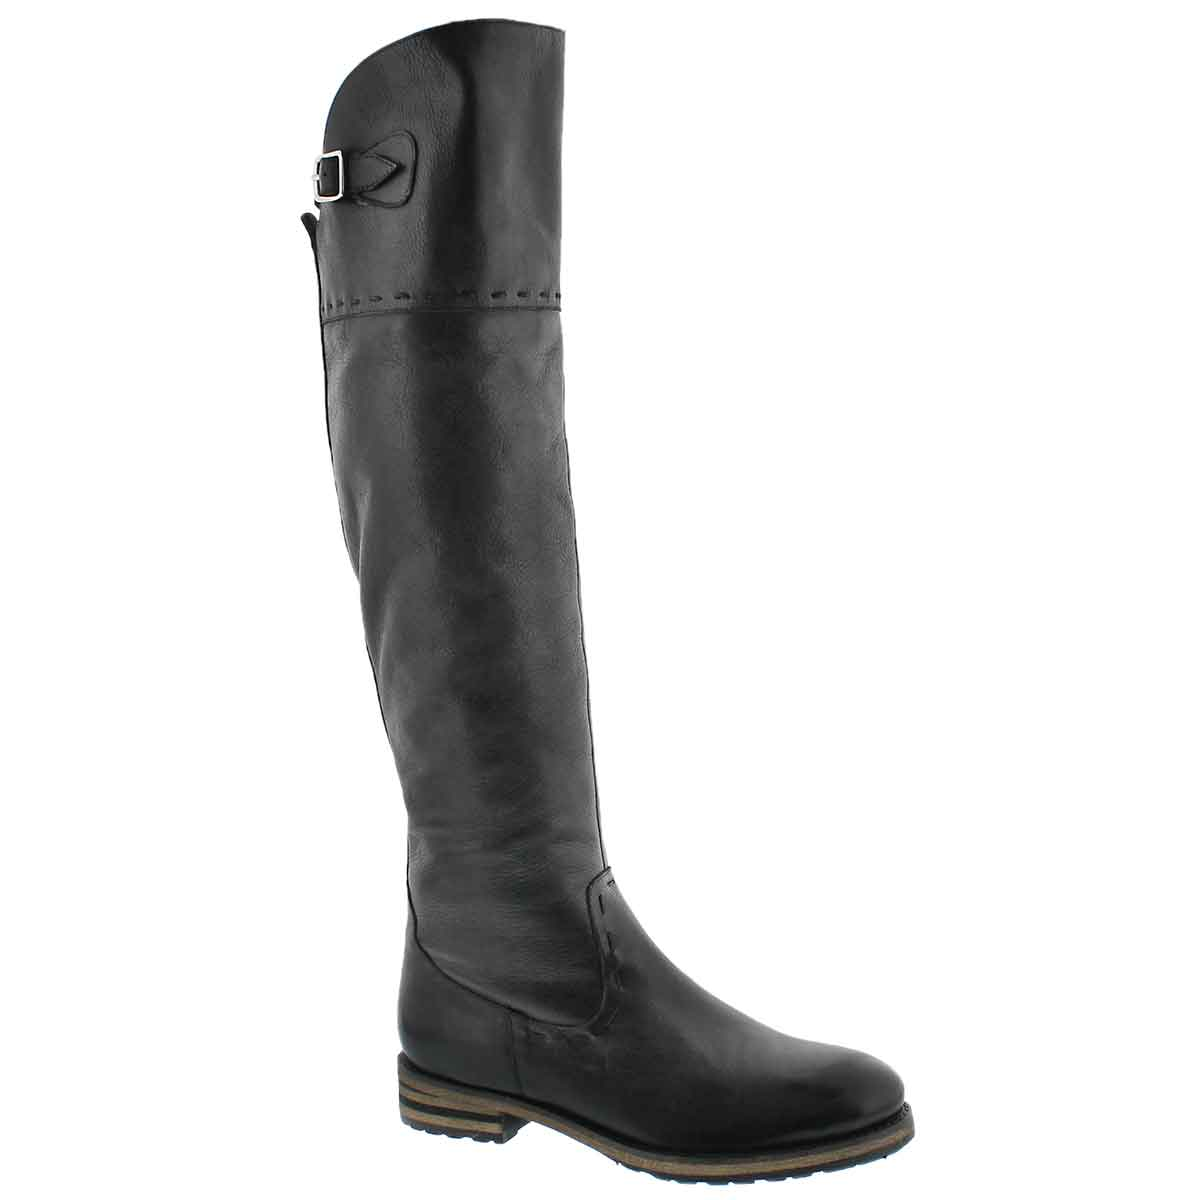 Women's LYDIA black tall riding boots